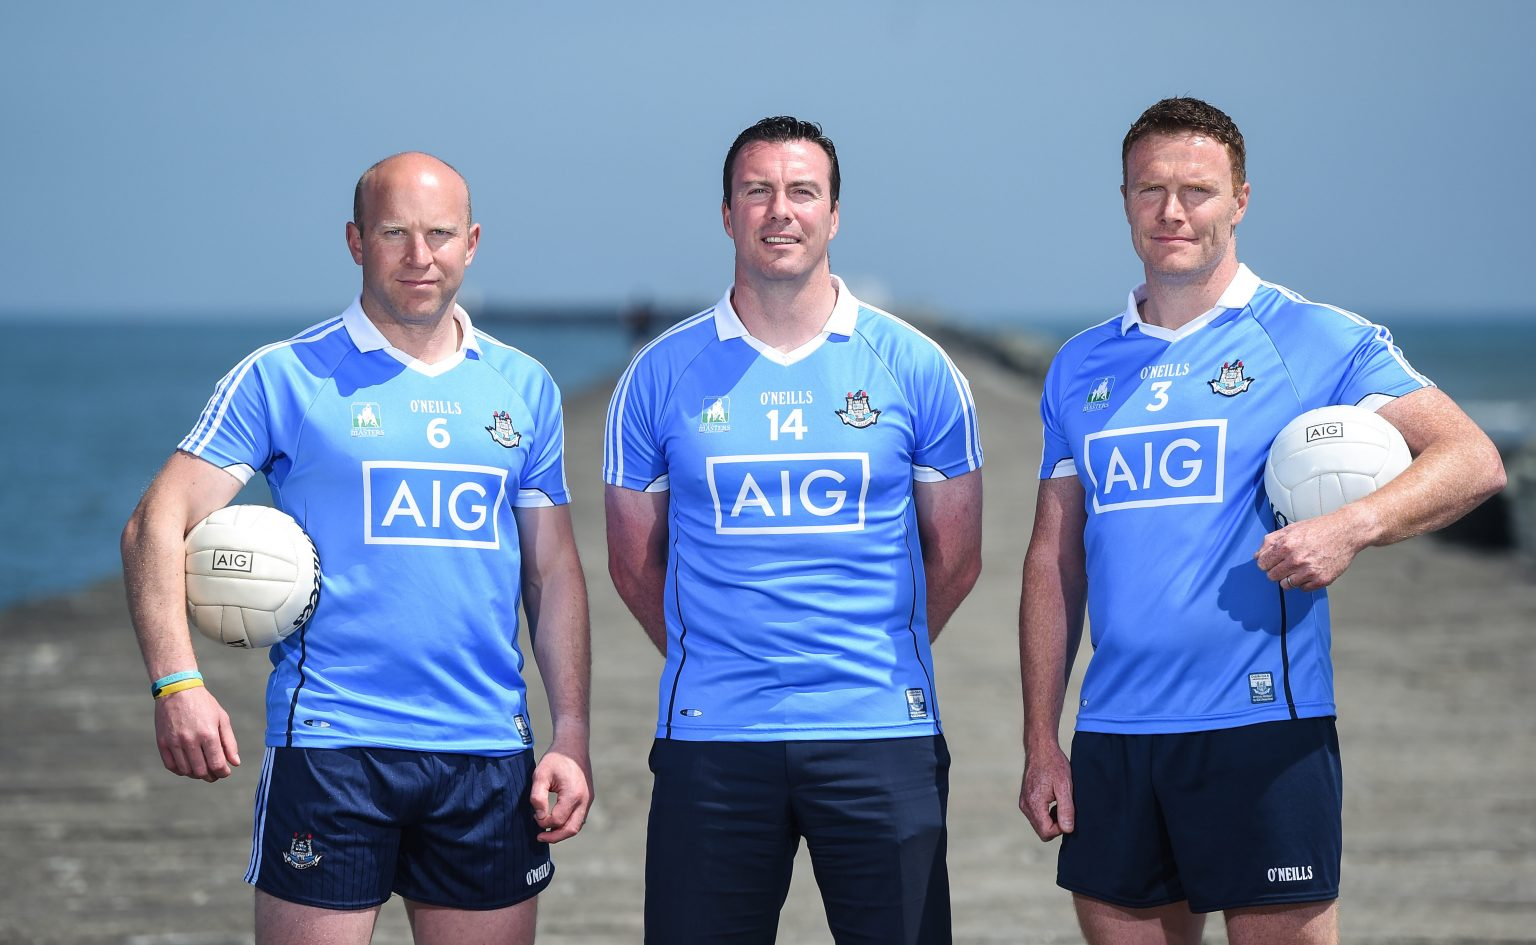 24a43c693b0 Three Former Dublin Players In Sky Blue Jersey's Pose with a white ball  under their arm